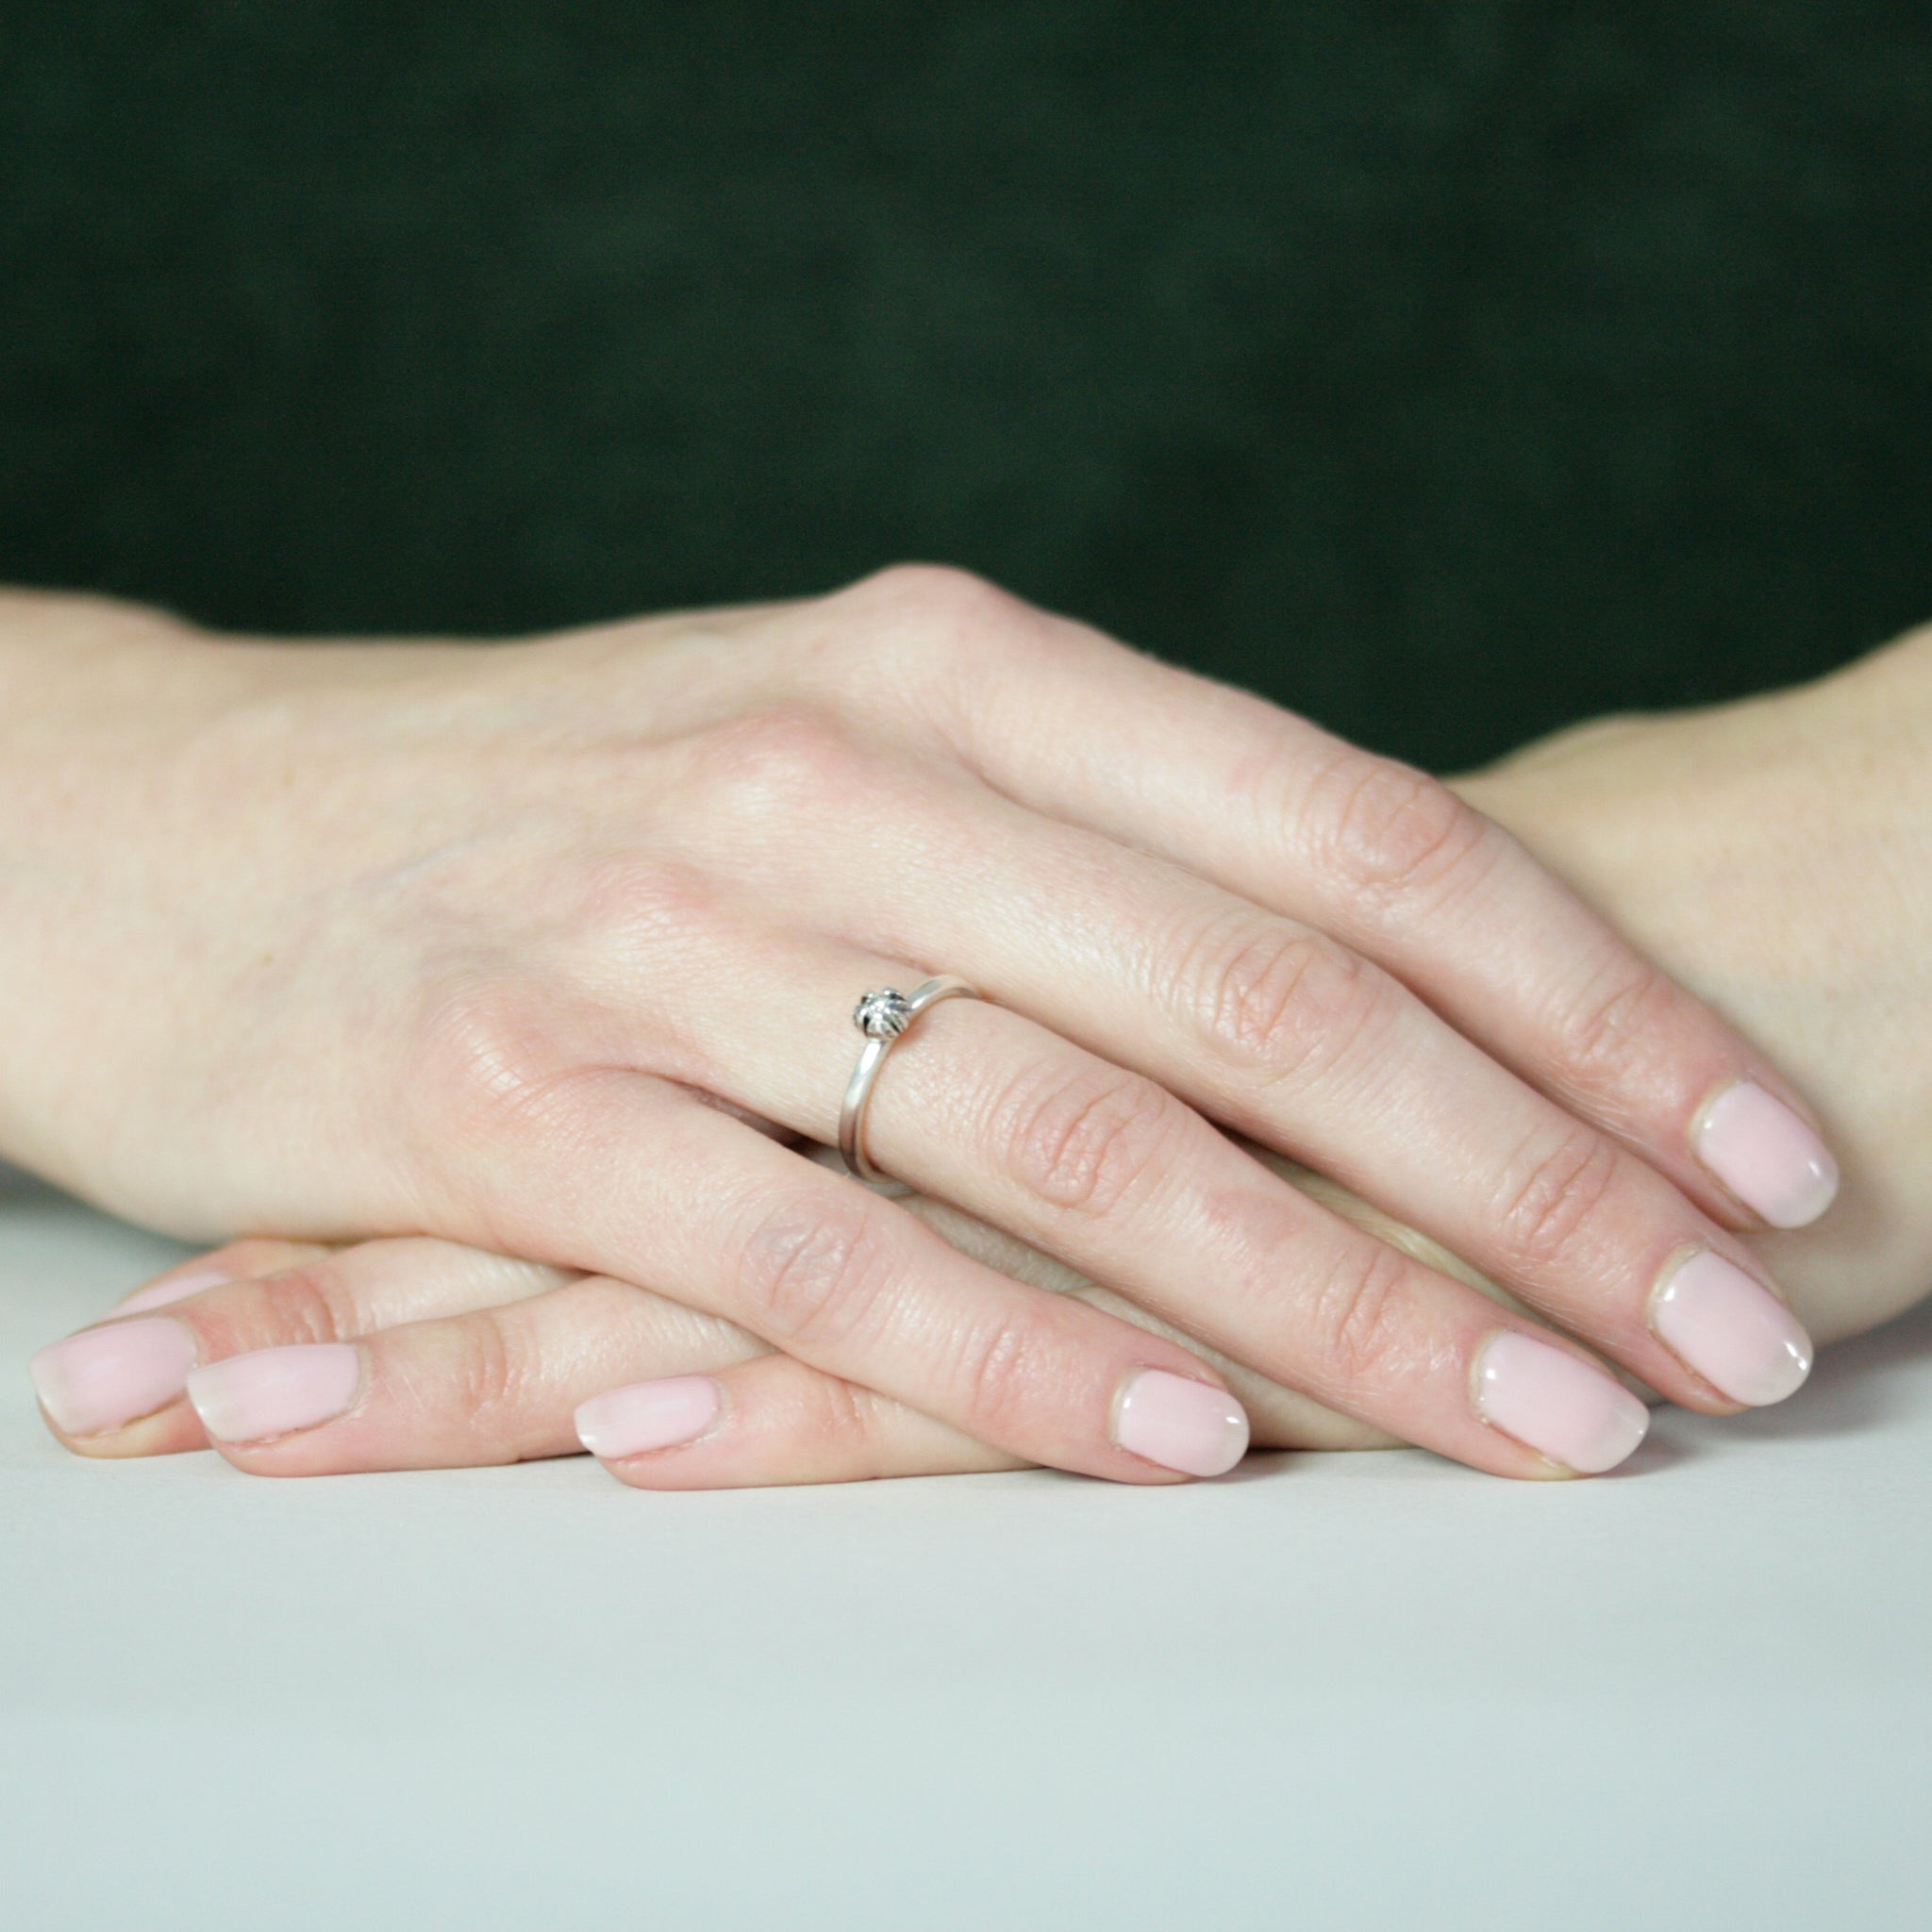 hands resting with silver bud diamond ring on finger